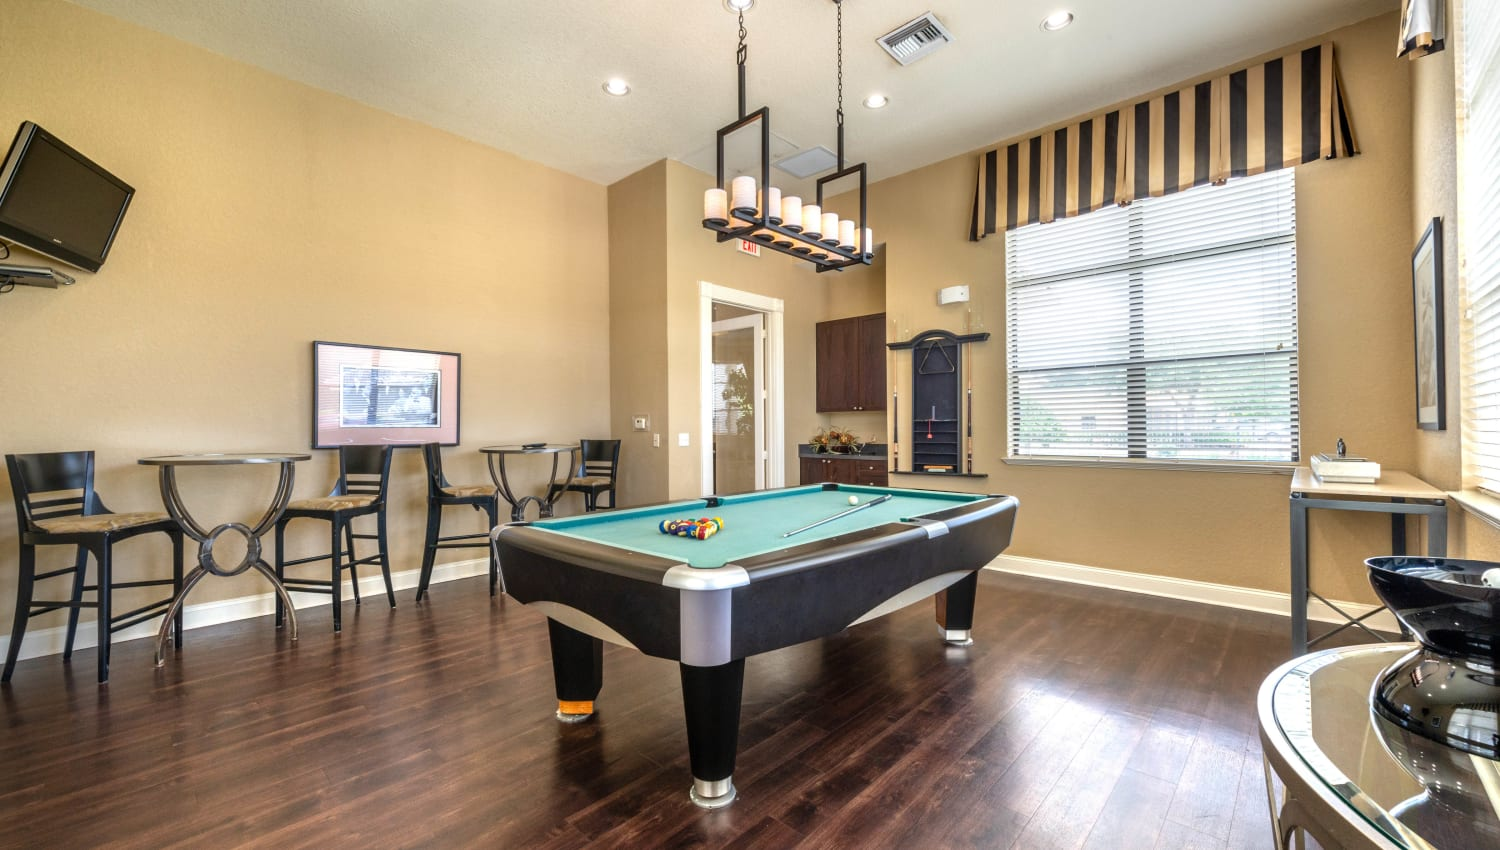 Billiards table in the game room at Mirador & Stovall at River City in Jacksonville, Florida